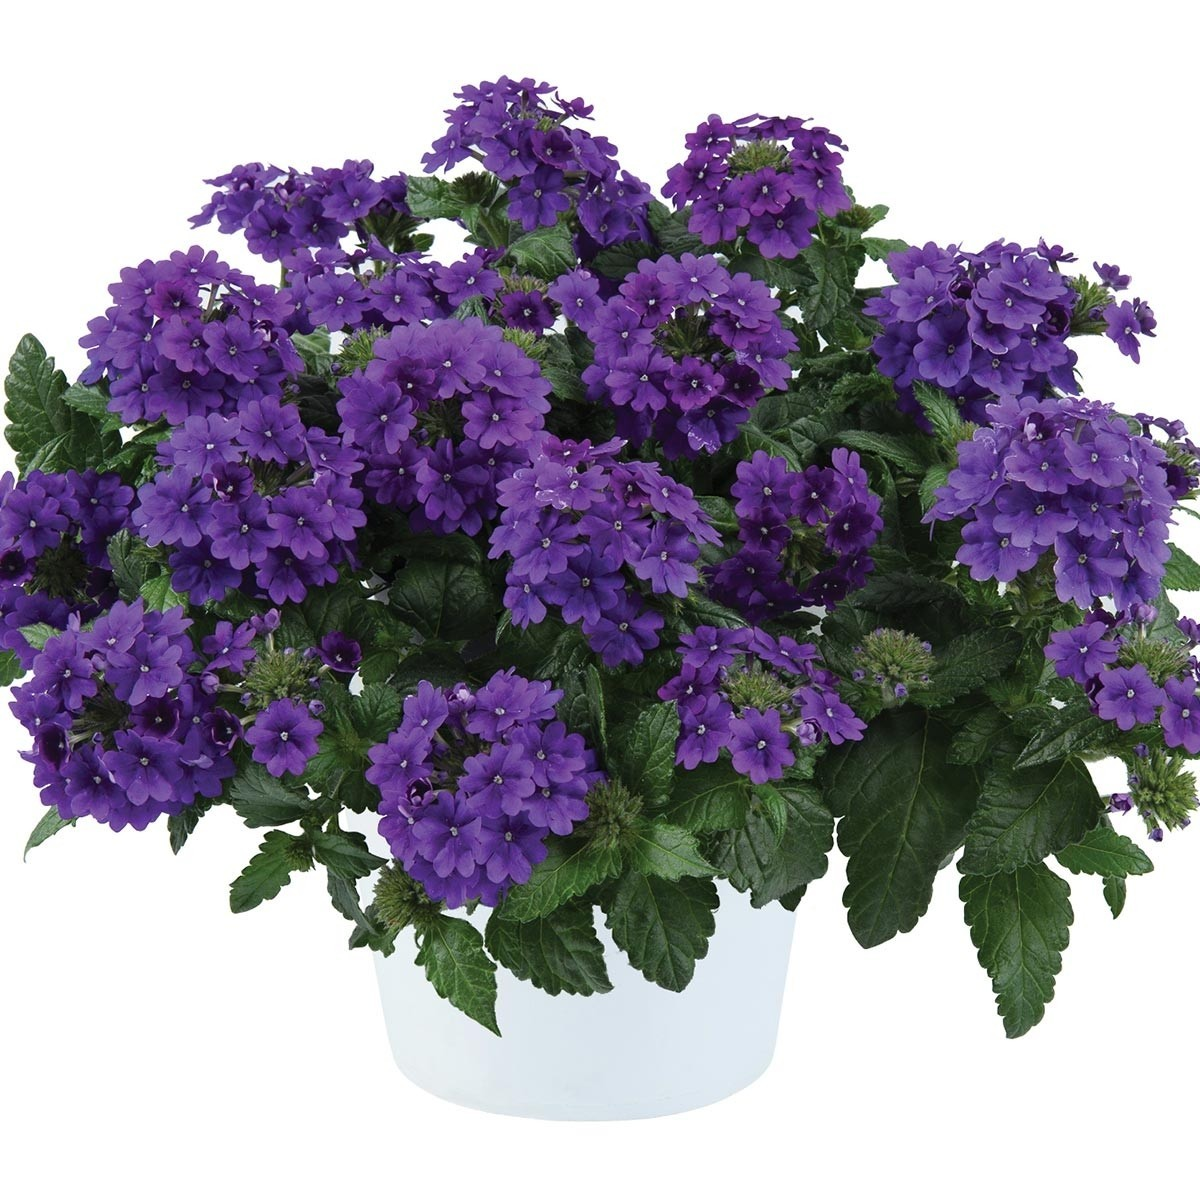 Verveine Virgo up Purple - Verveine des jardins